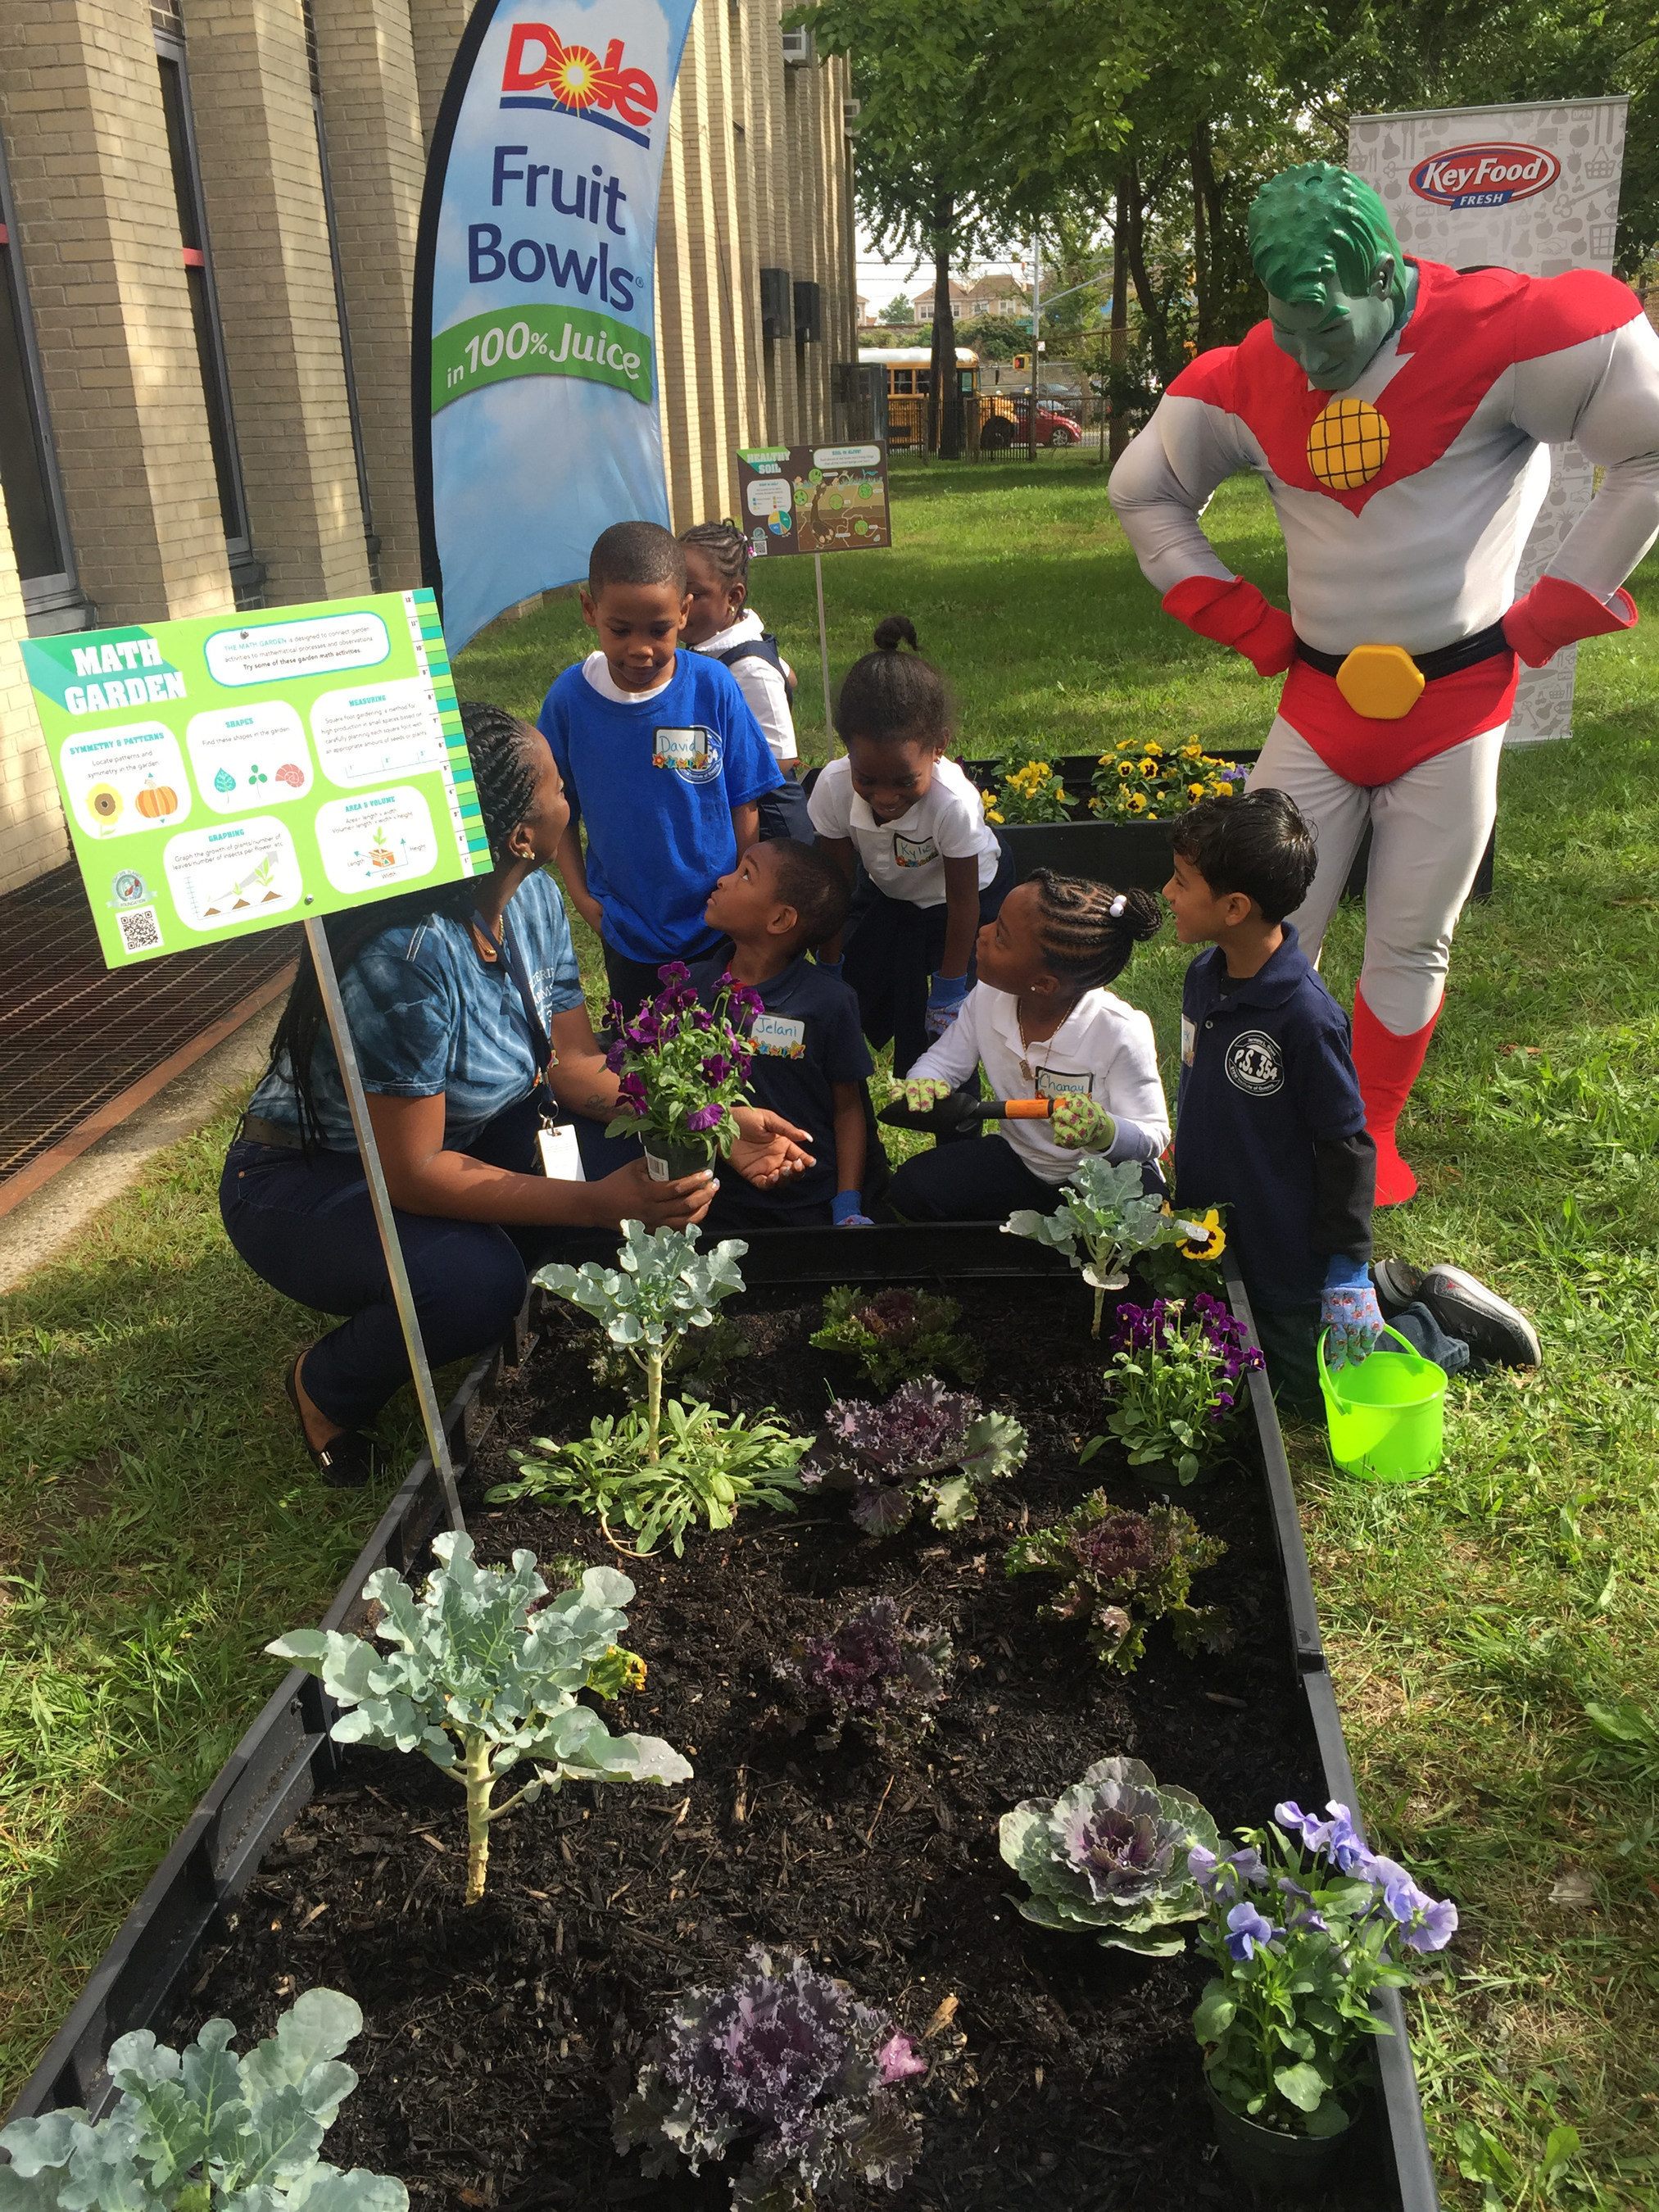 Kids from PS 354 STEM School of Queens learn first hand from their newly installed Learning Garden compliments of Dole Packaged Foods and Key Food as Captain Planet looks on.